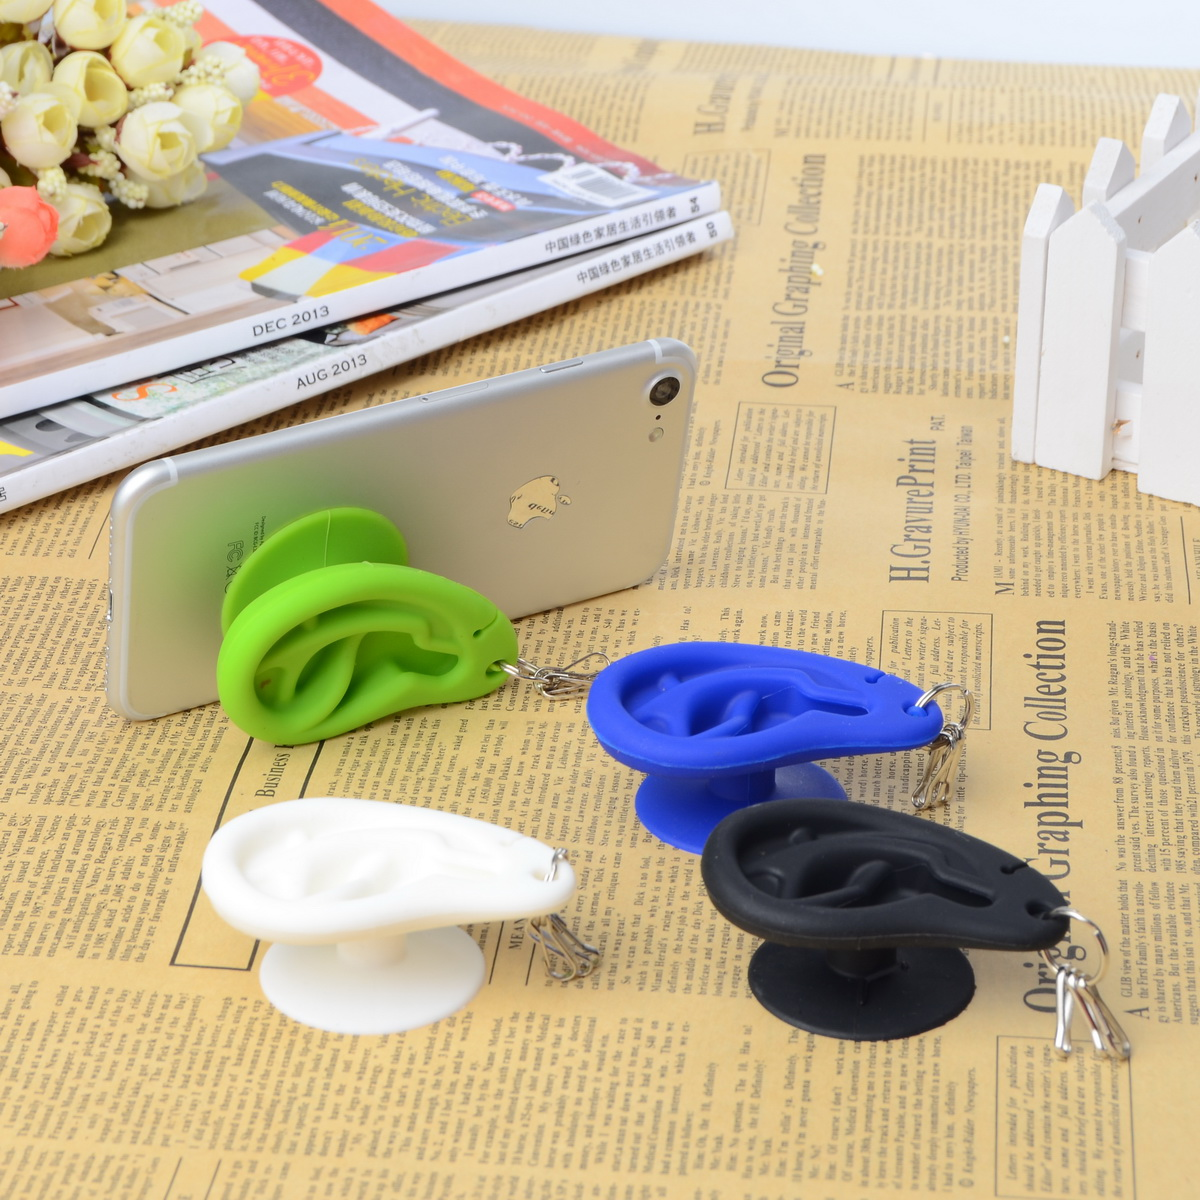 Buy Ear Creative Silicone Sucker Stand Holder Cable Organizer For Smartphone Key Chain Earphone